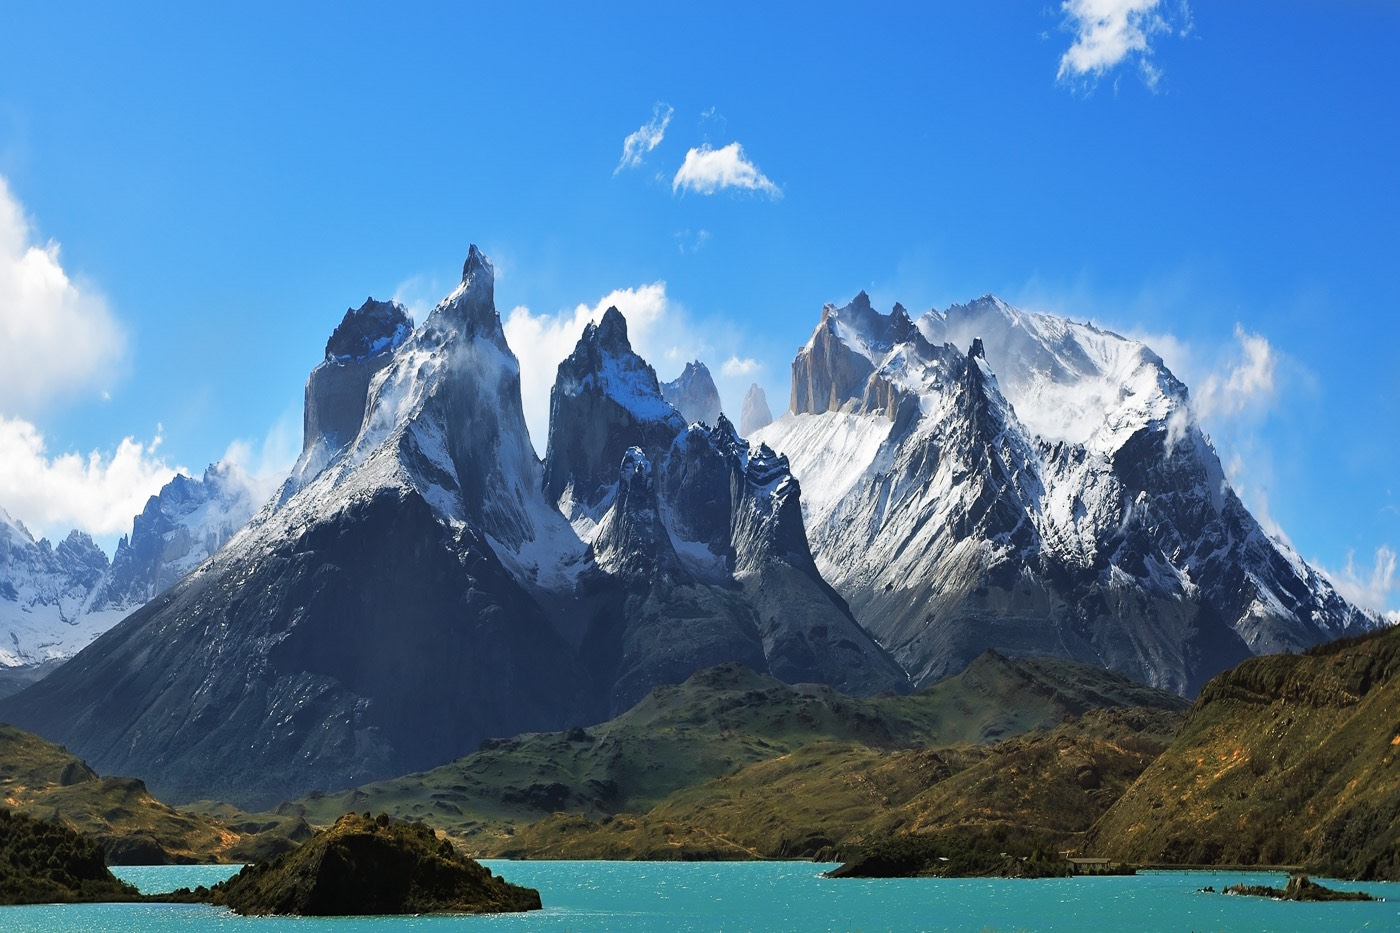 Circuito W Torres Del Paine Camping : Adventure activities in torres del paine national park pygmy